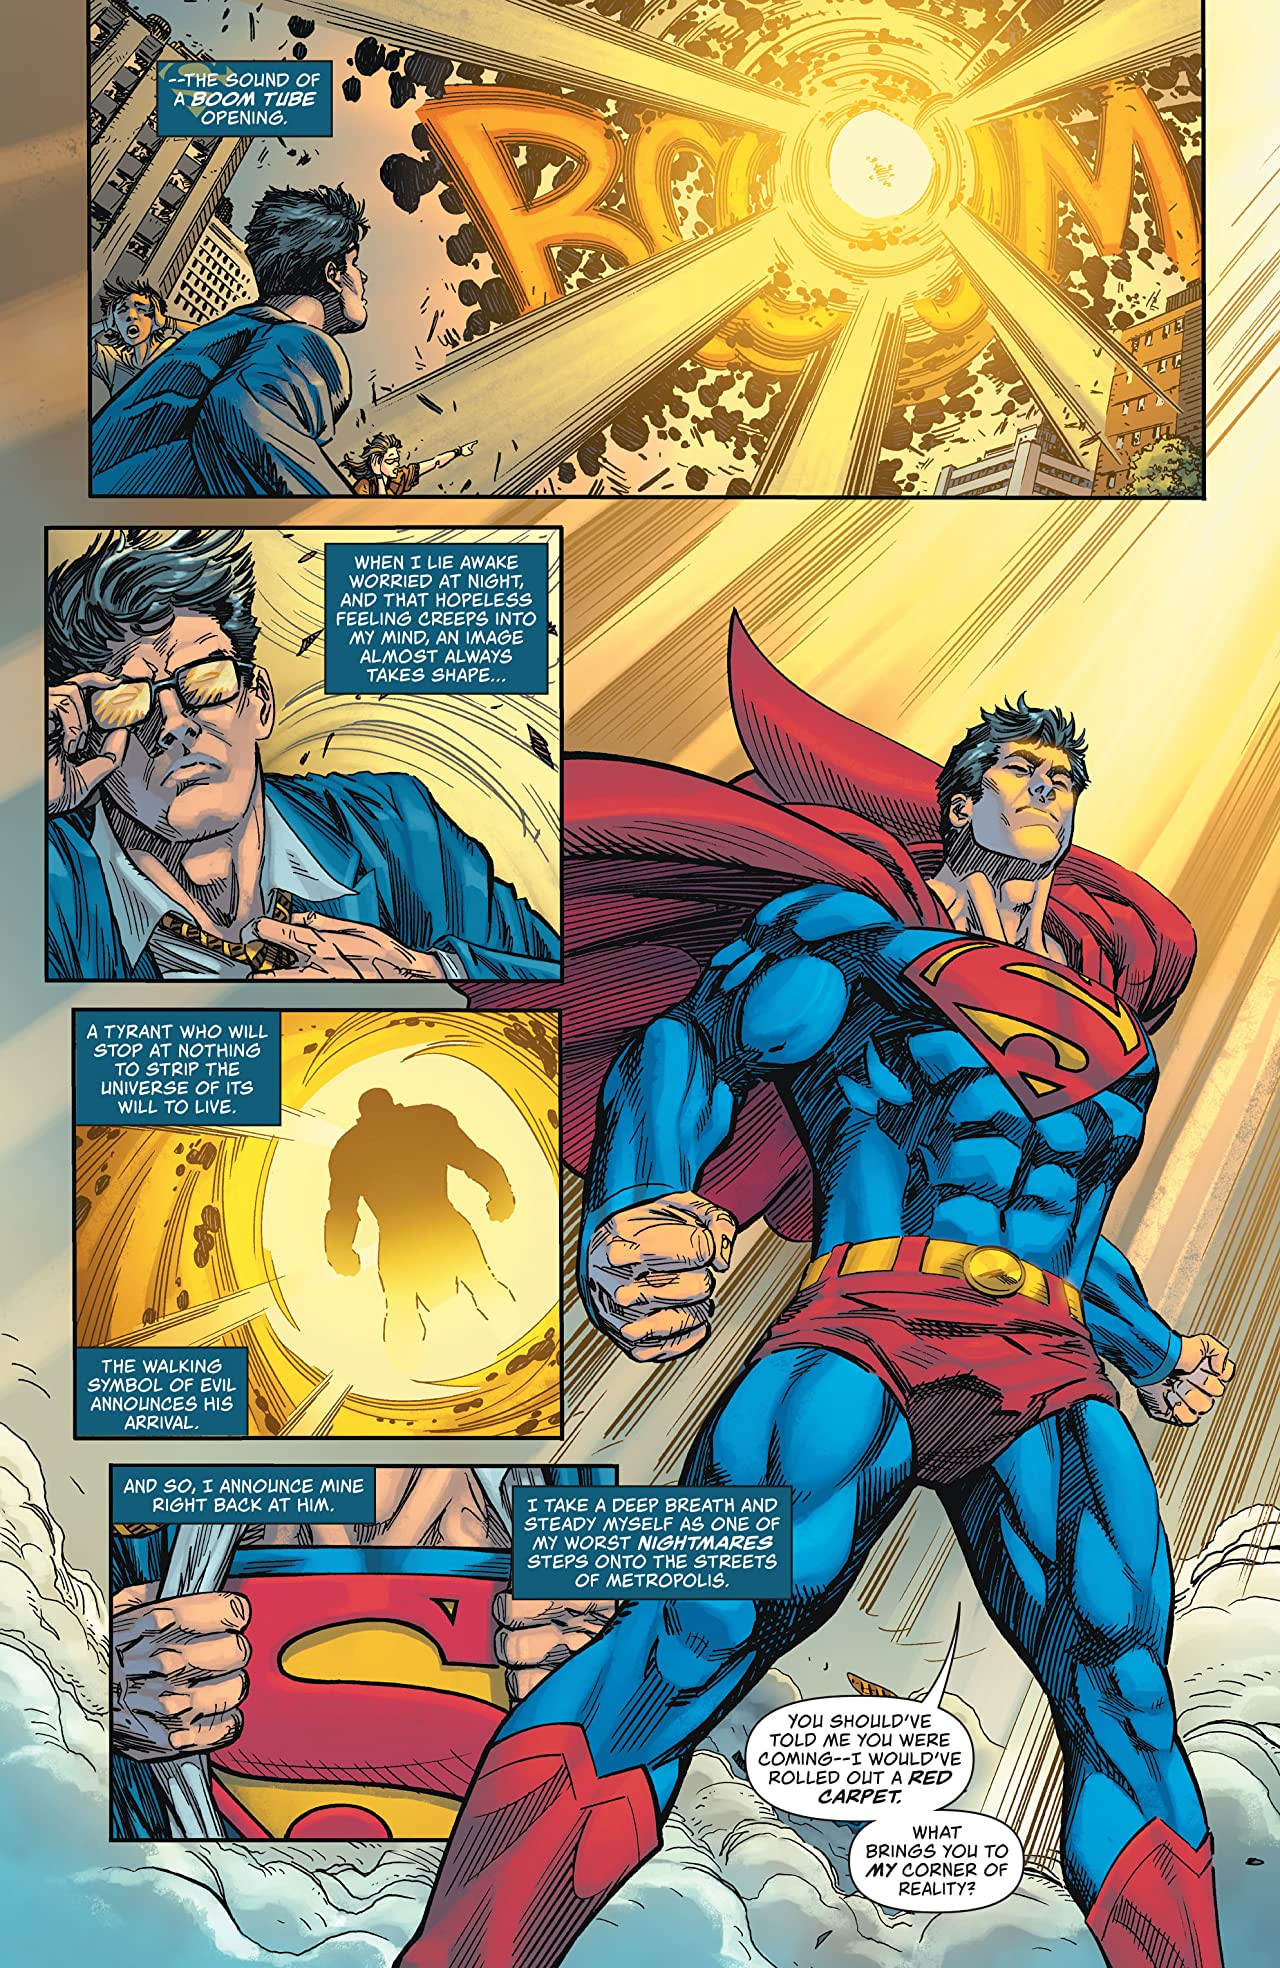 Superman: Man of Tomorrow #16